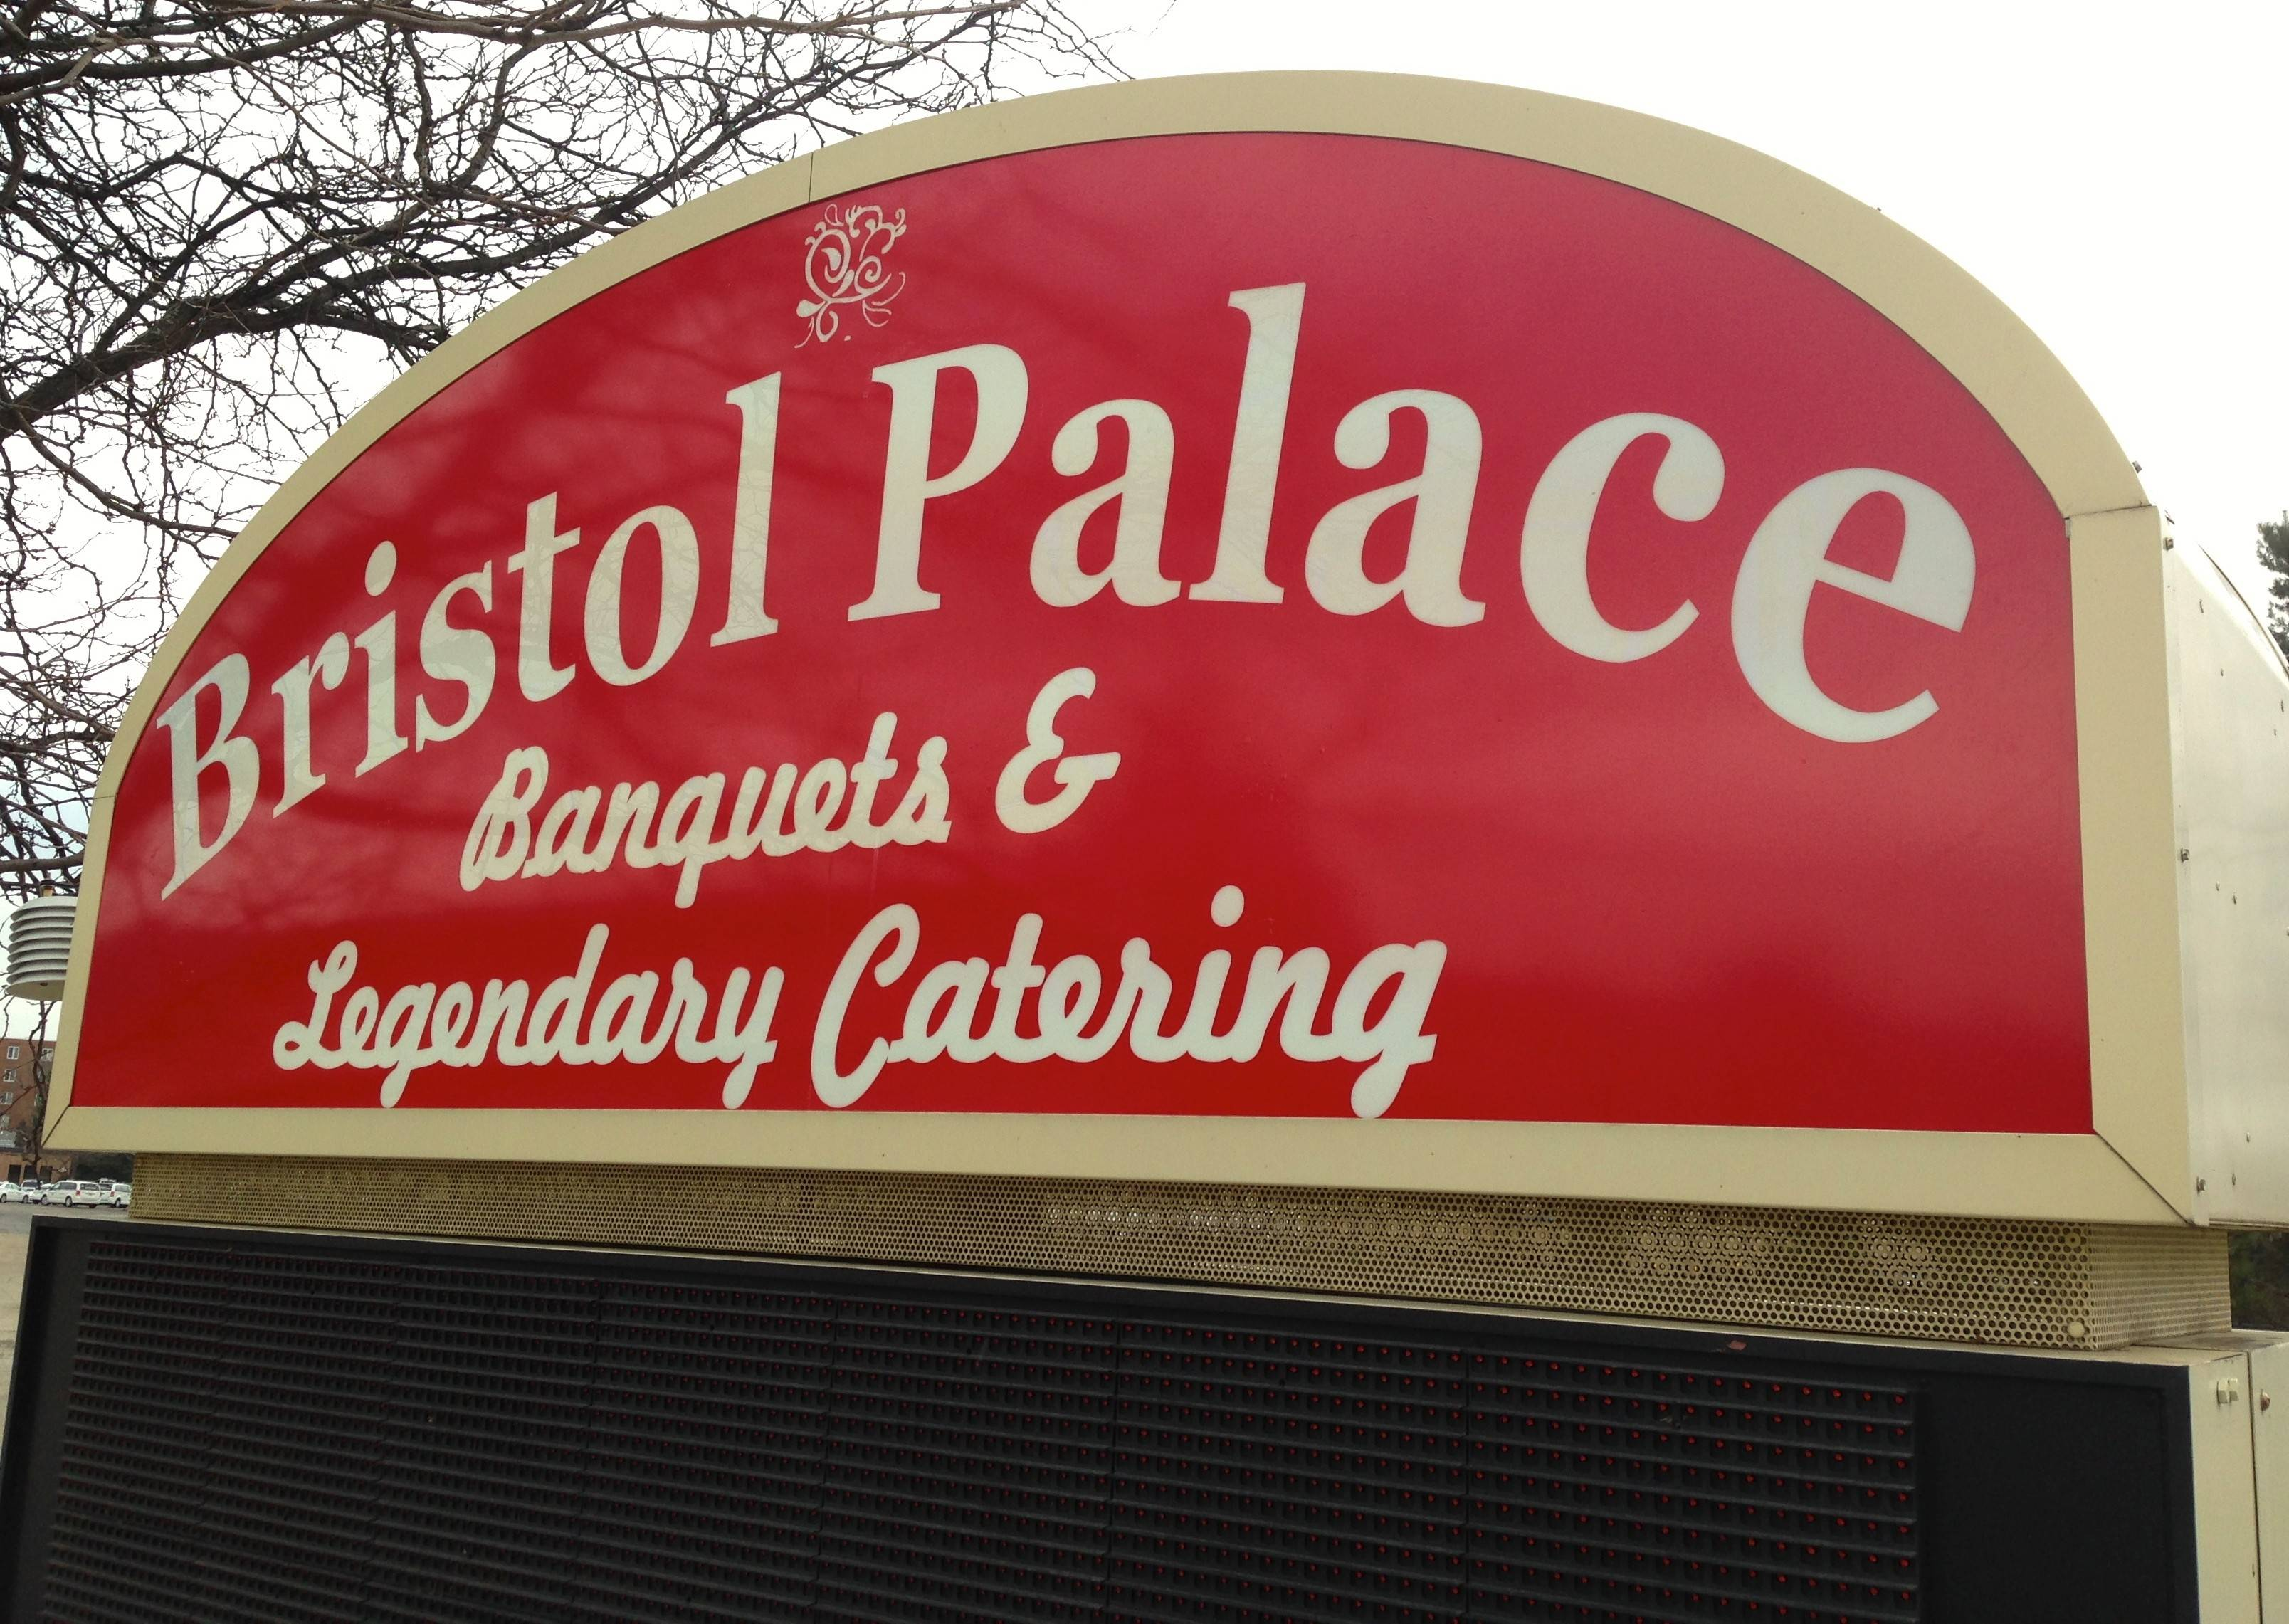 A sign announces the impending arrival of Bristol Palace, the business that will replace the recently closed Bristol Court banquet hall in Mount Prospect.